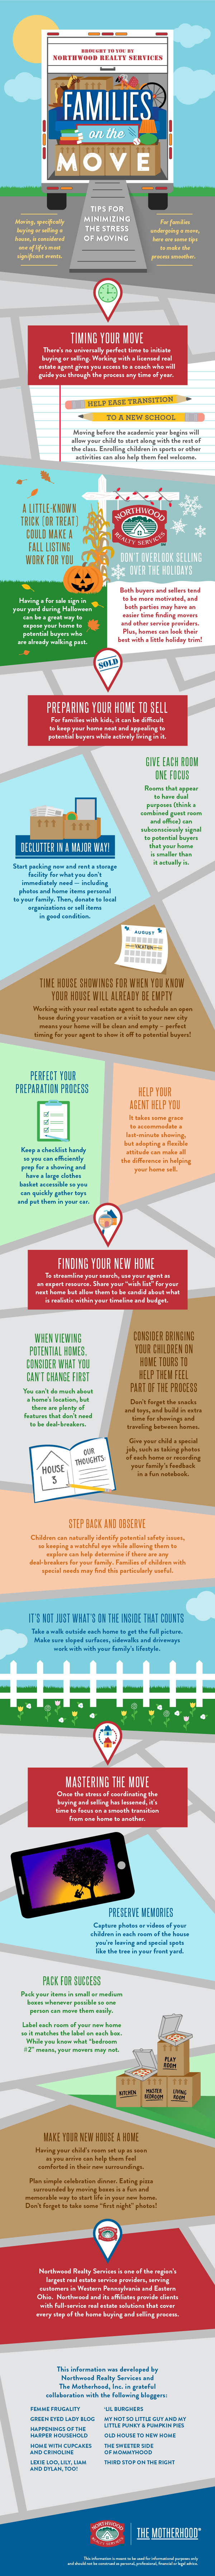 Simple Hacks for Moving with Children. Sharing my tips and tricks to help make your next move easier on your children!